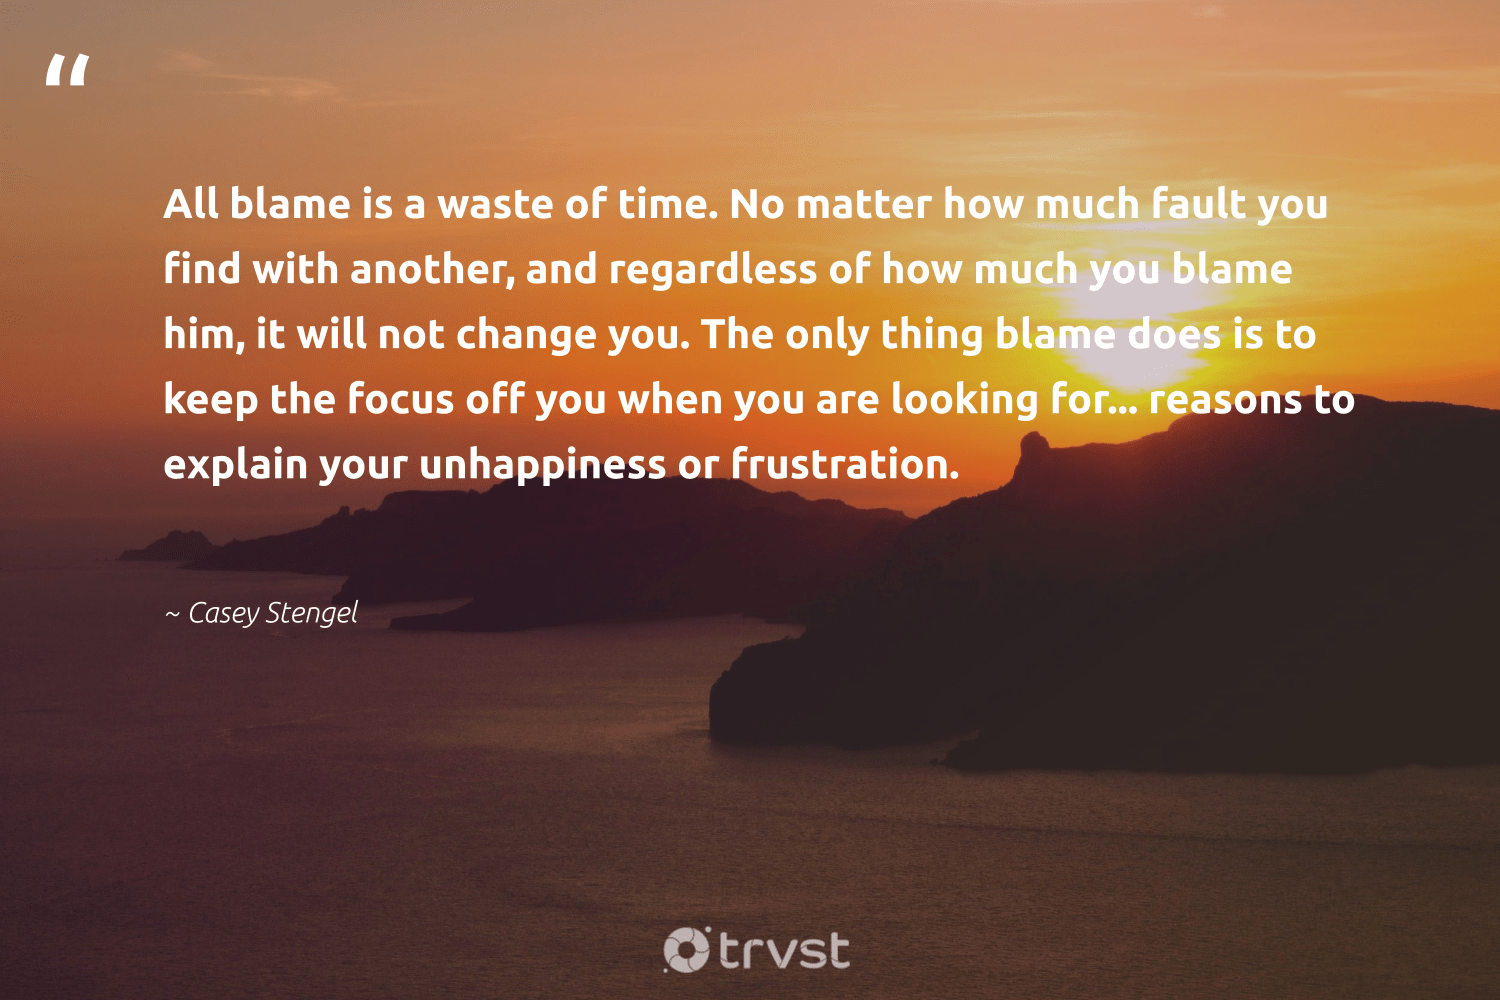 """All blame is a waste of time. No matter how much fault you find with another, and regardless of how much you blame him, it will not change you. The only thing blame does is to keep the focus off you when you are looking for... reasons to explain your unhappiness or frustration.""  - Casey Stengel #trvst #quotes #waste #focus #motivation #changemakers #futureofwork #socialimpact #productivity #togetherwecan #begreat #dotherightthing"